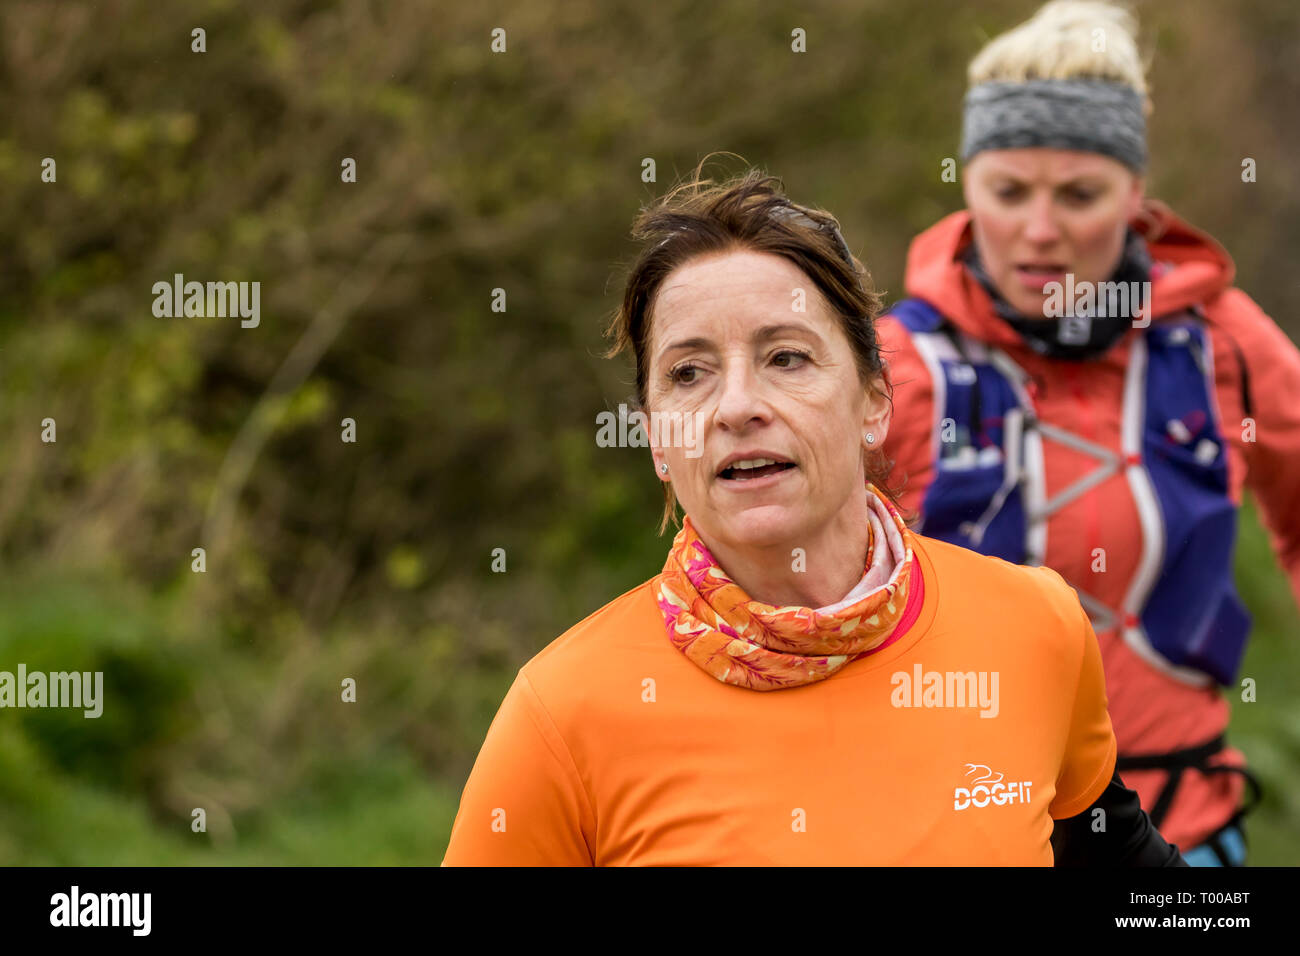 Birling Gap, East Sussex, UK. 16th March 2019. Despite strong winds and drizzle from Storm Gareth as it batters the UK, competitors at all levels face the exposed high cliffs of Beachy Head on the South coast of England to take part in a series of Endurance life race events. The 4 events consist of, a 10km, half and full marathon and for the most determined of runners the 34.1 mile Ultra event. The rough steep terrain represents one of the toughest marathon courses in the UK made all the more challenging in the fierce weather conditions. - Stock Image